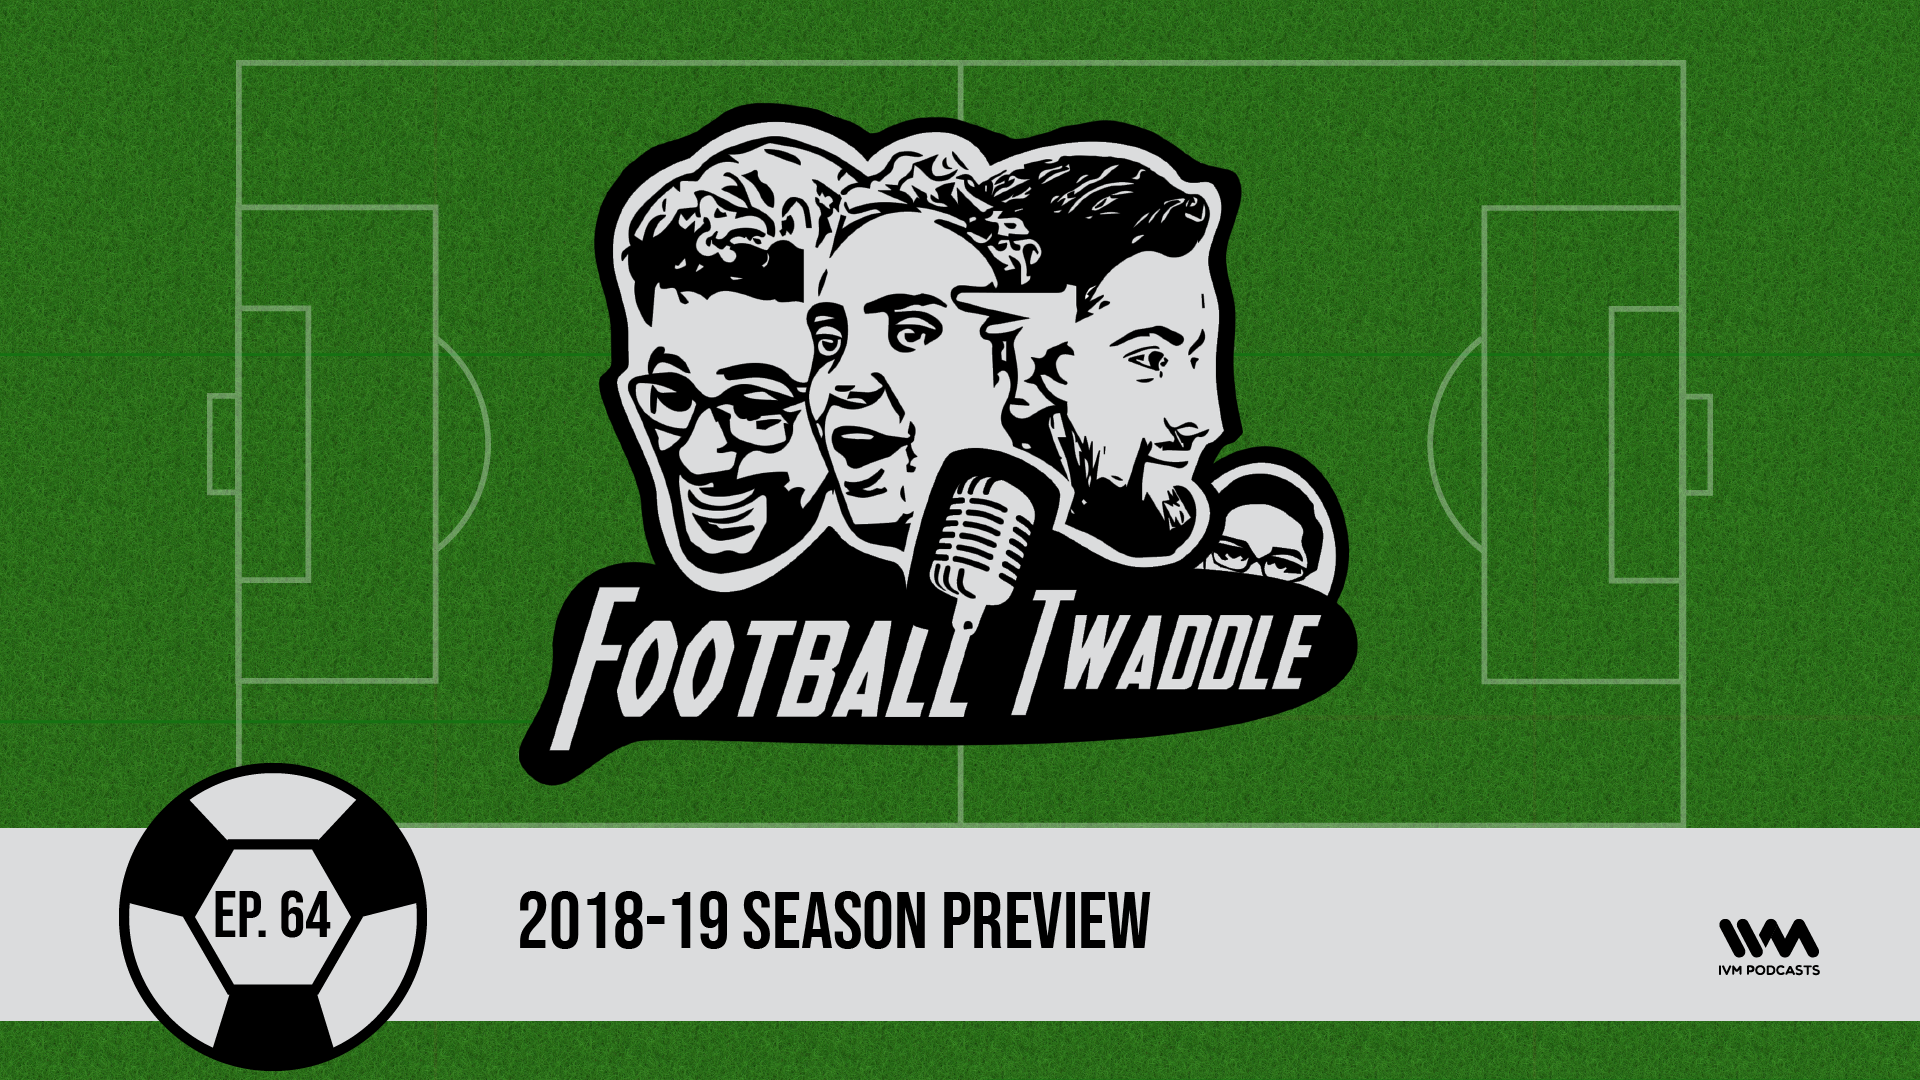 FootballTwaddleEpisode64.png